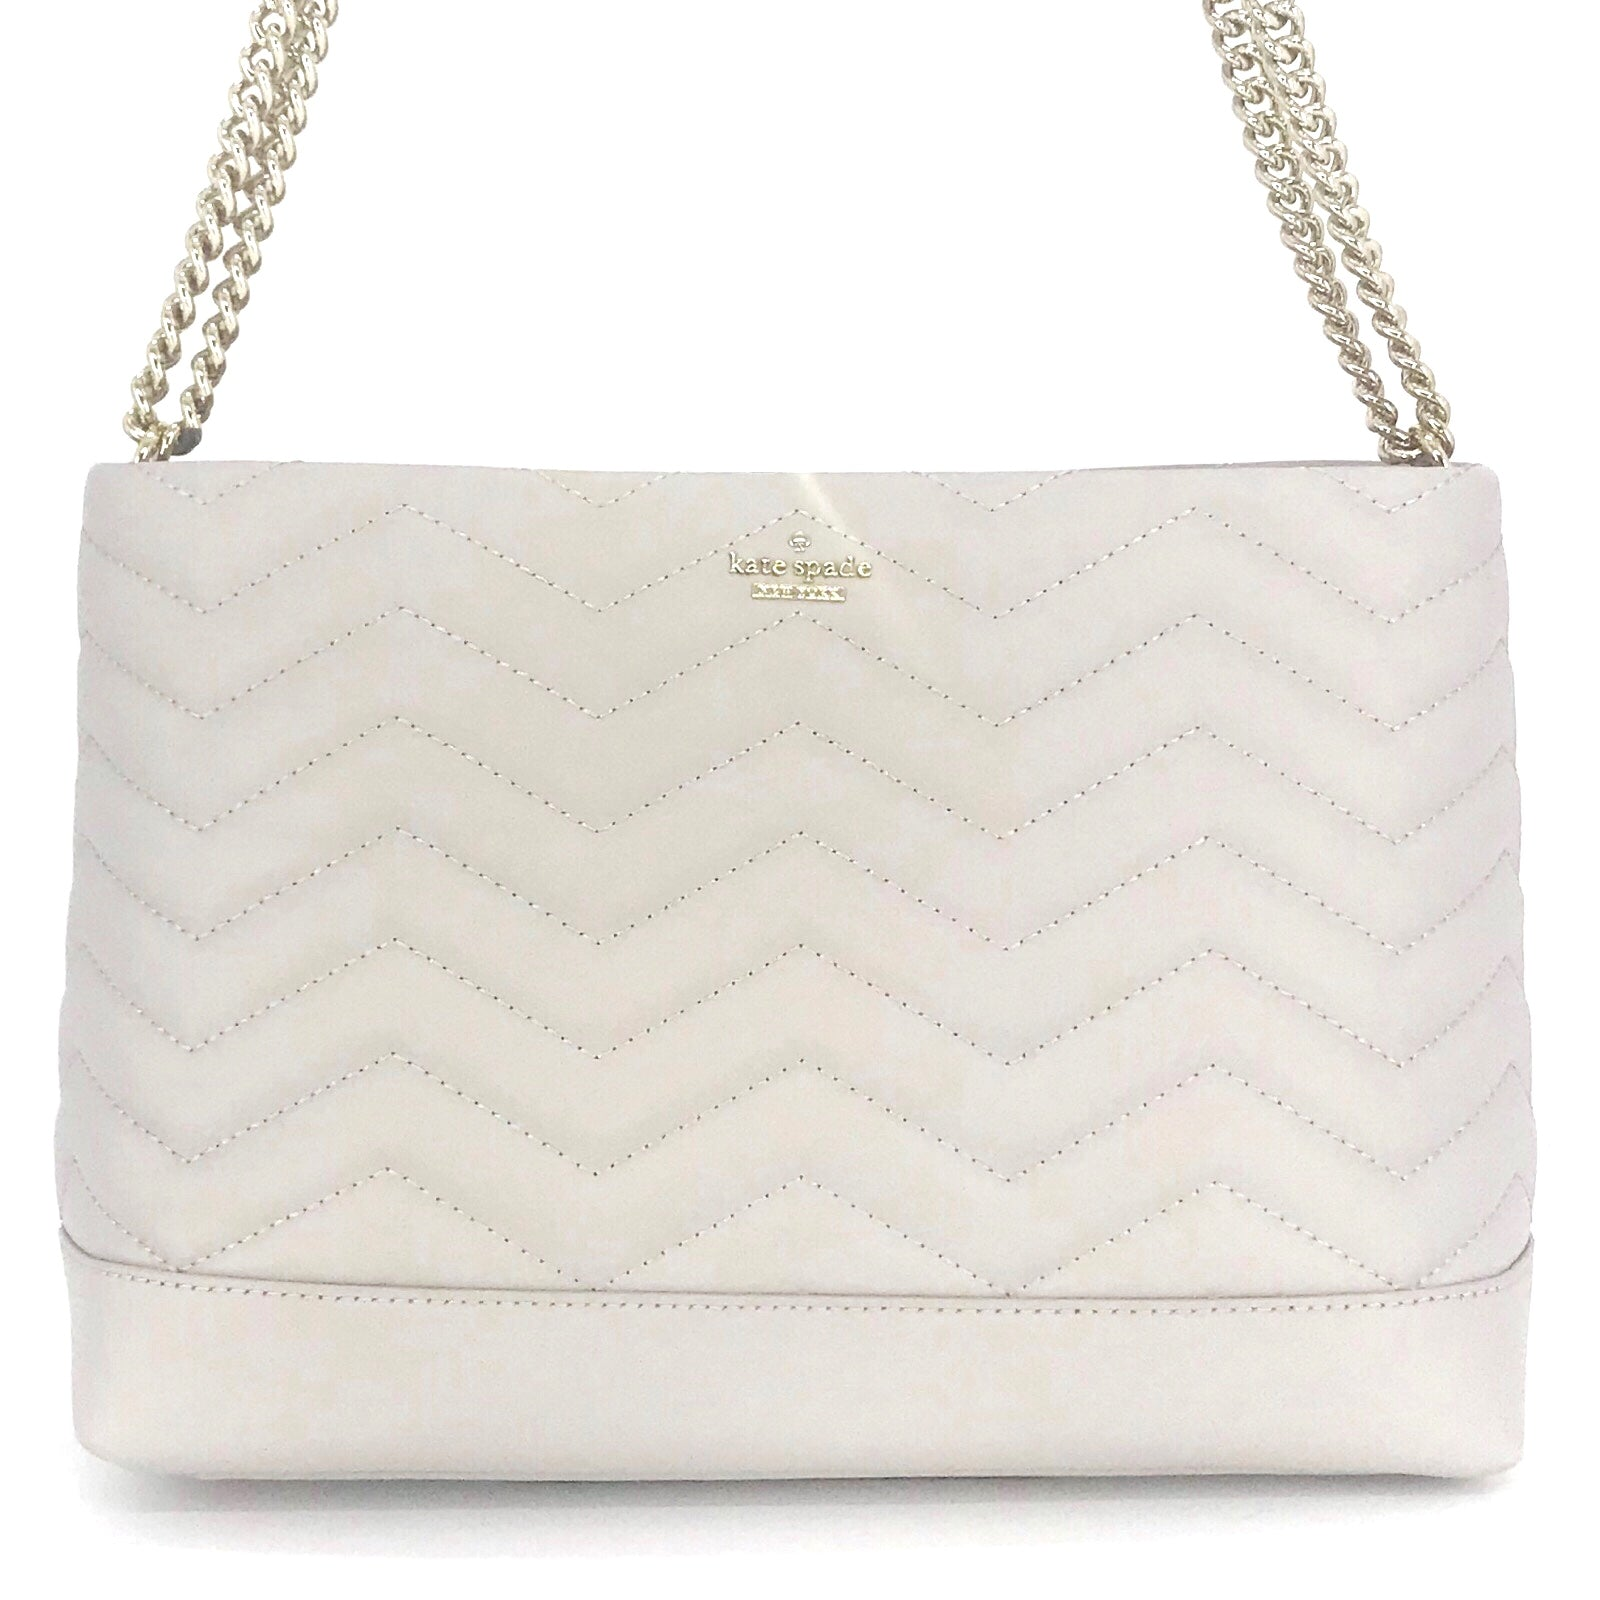 Kate Spade Reese Park Lorie Shoulder Bag Ash Grey